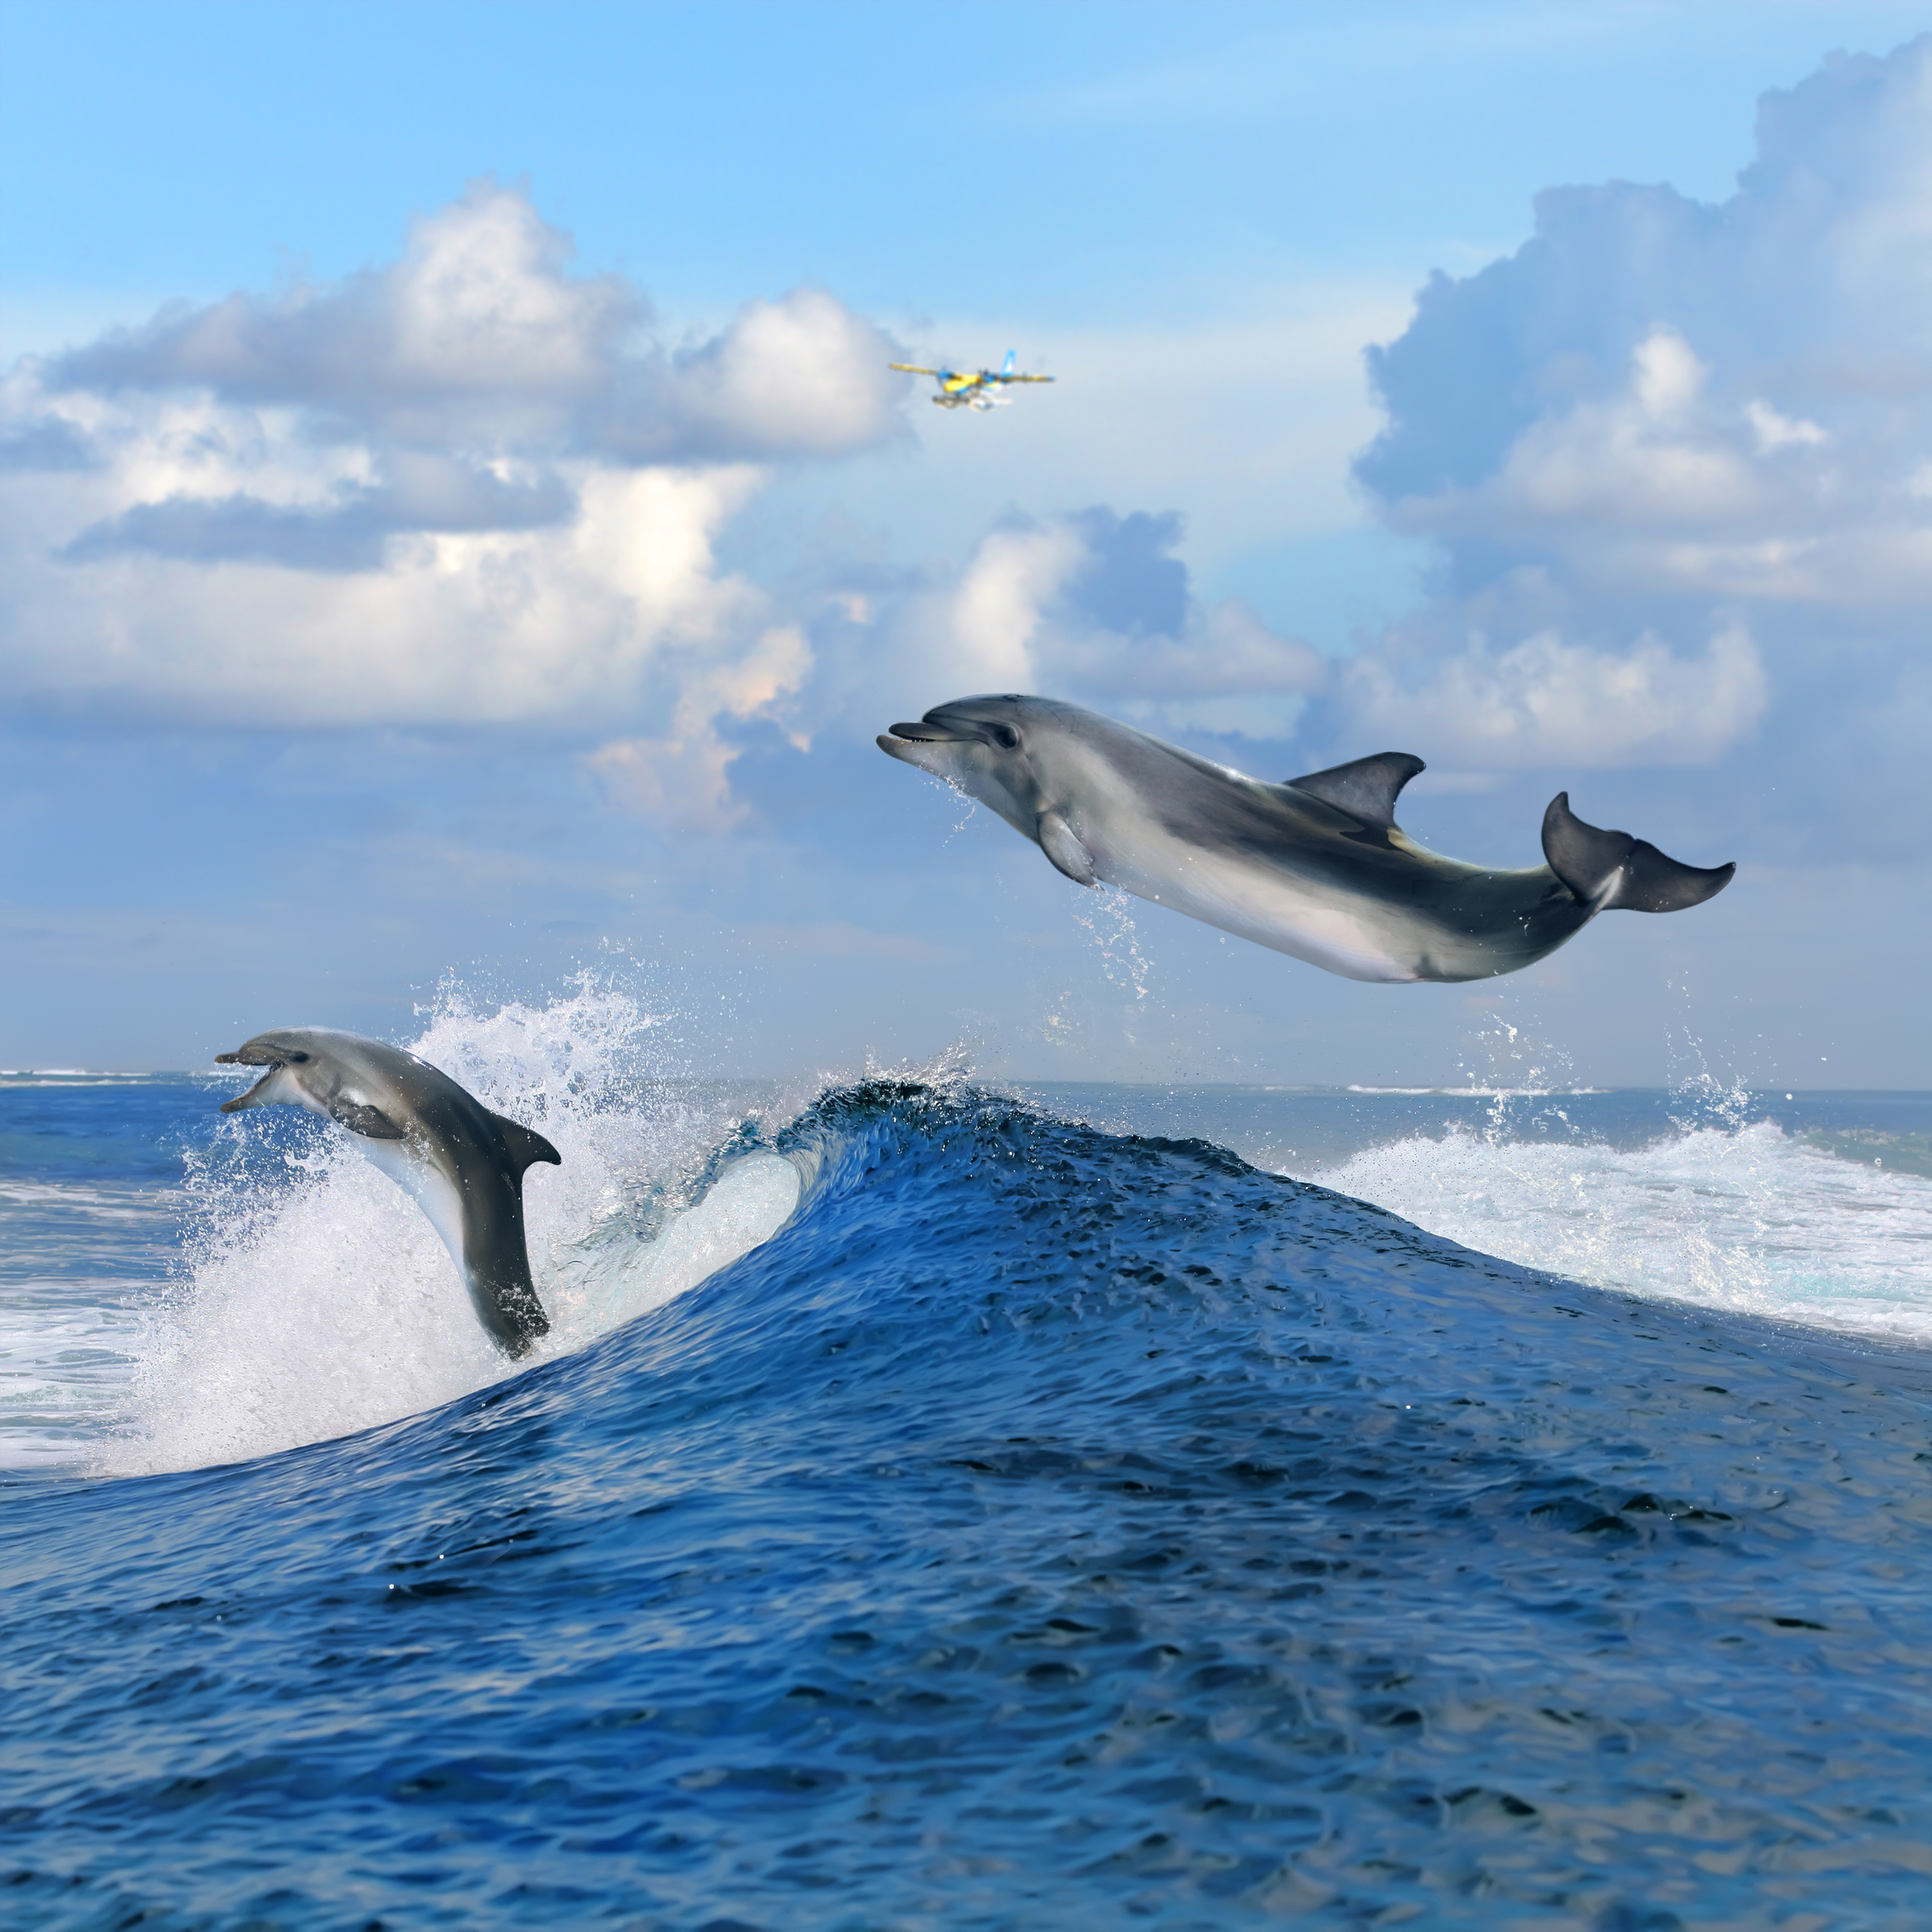 Spot dolphins in the Indian Ocean